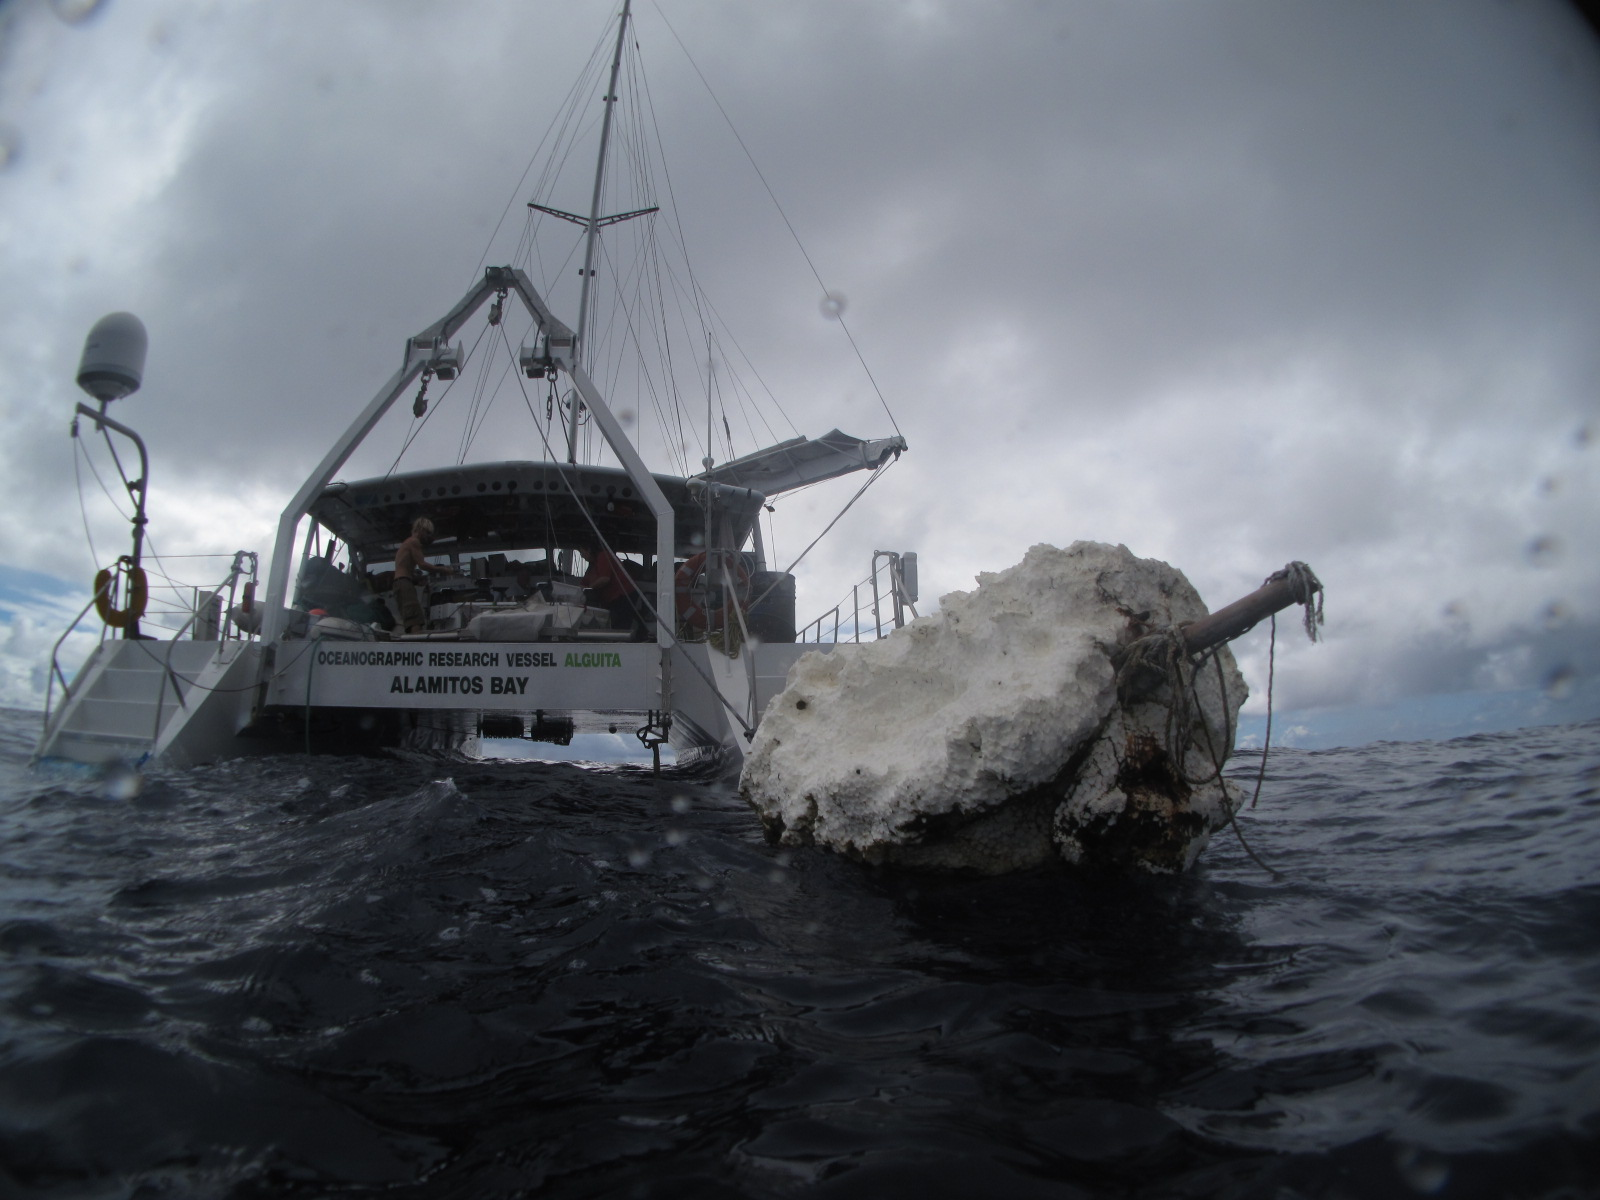 2009_north_pacific_gyre_sea_debris_alguita_hoshaw.JPG